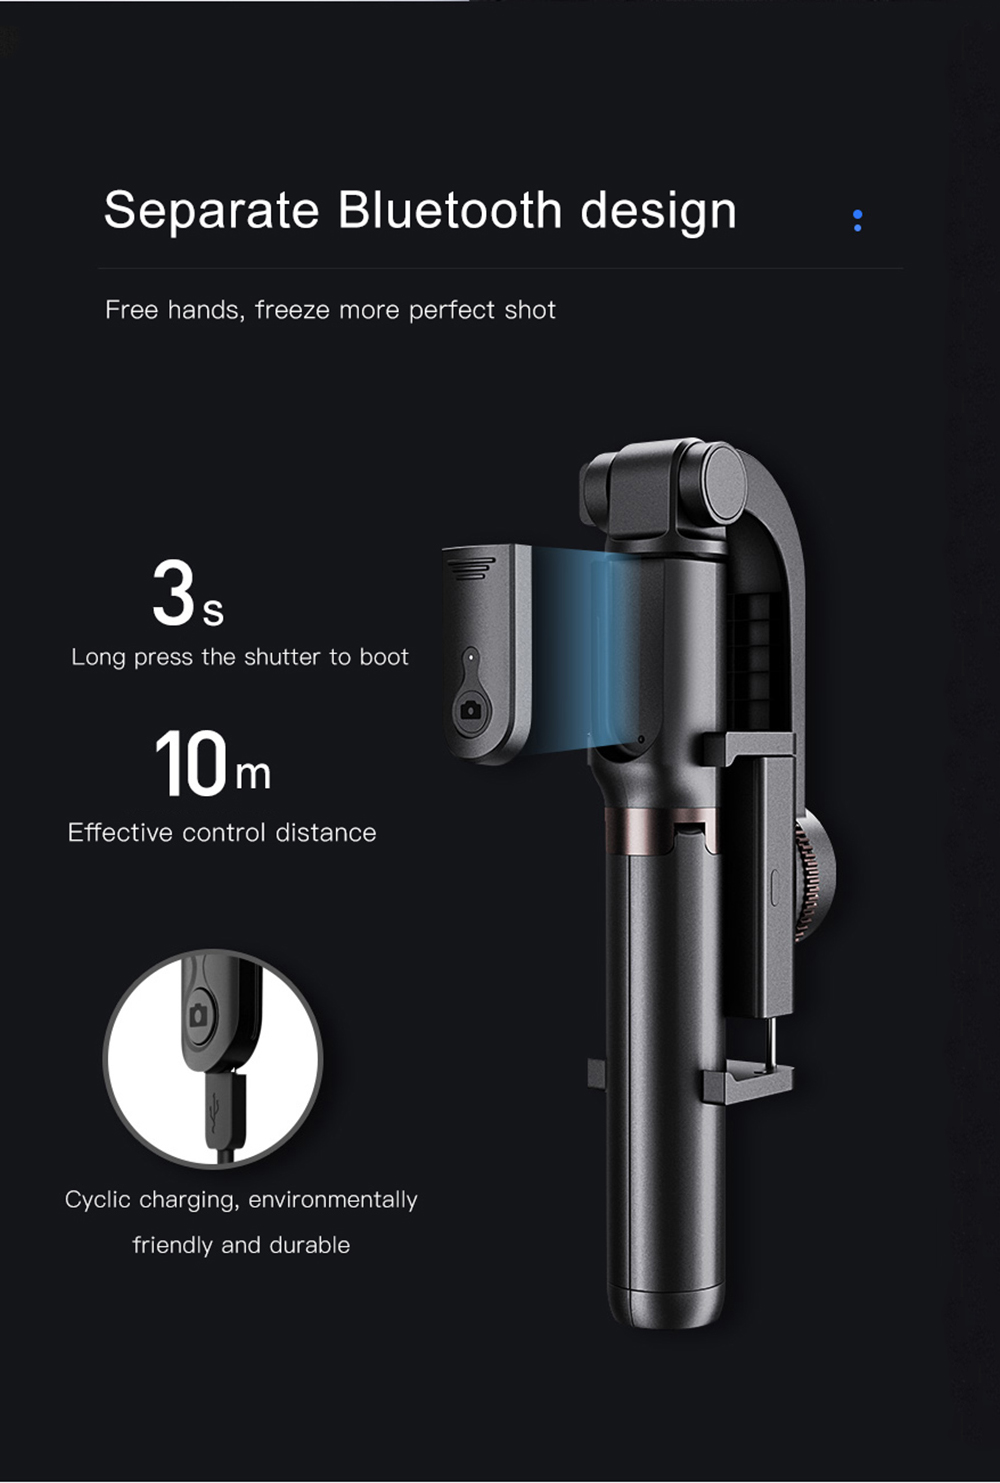 Bonola 3 in1 Handheld Gimbal Stabilizer Smartphone Selfie Stick Tripod For iOSAndroid Video Stabilizer For iPhone11ProSamsung (12)